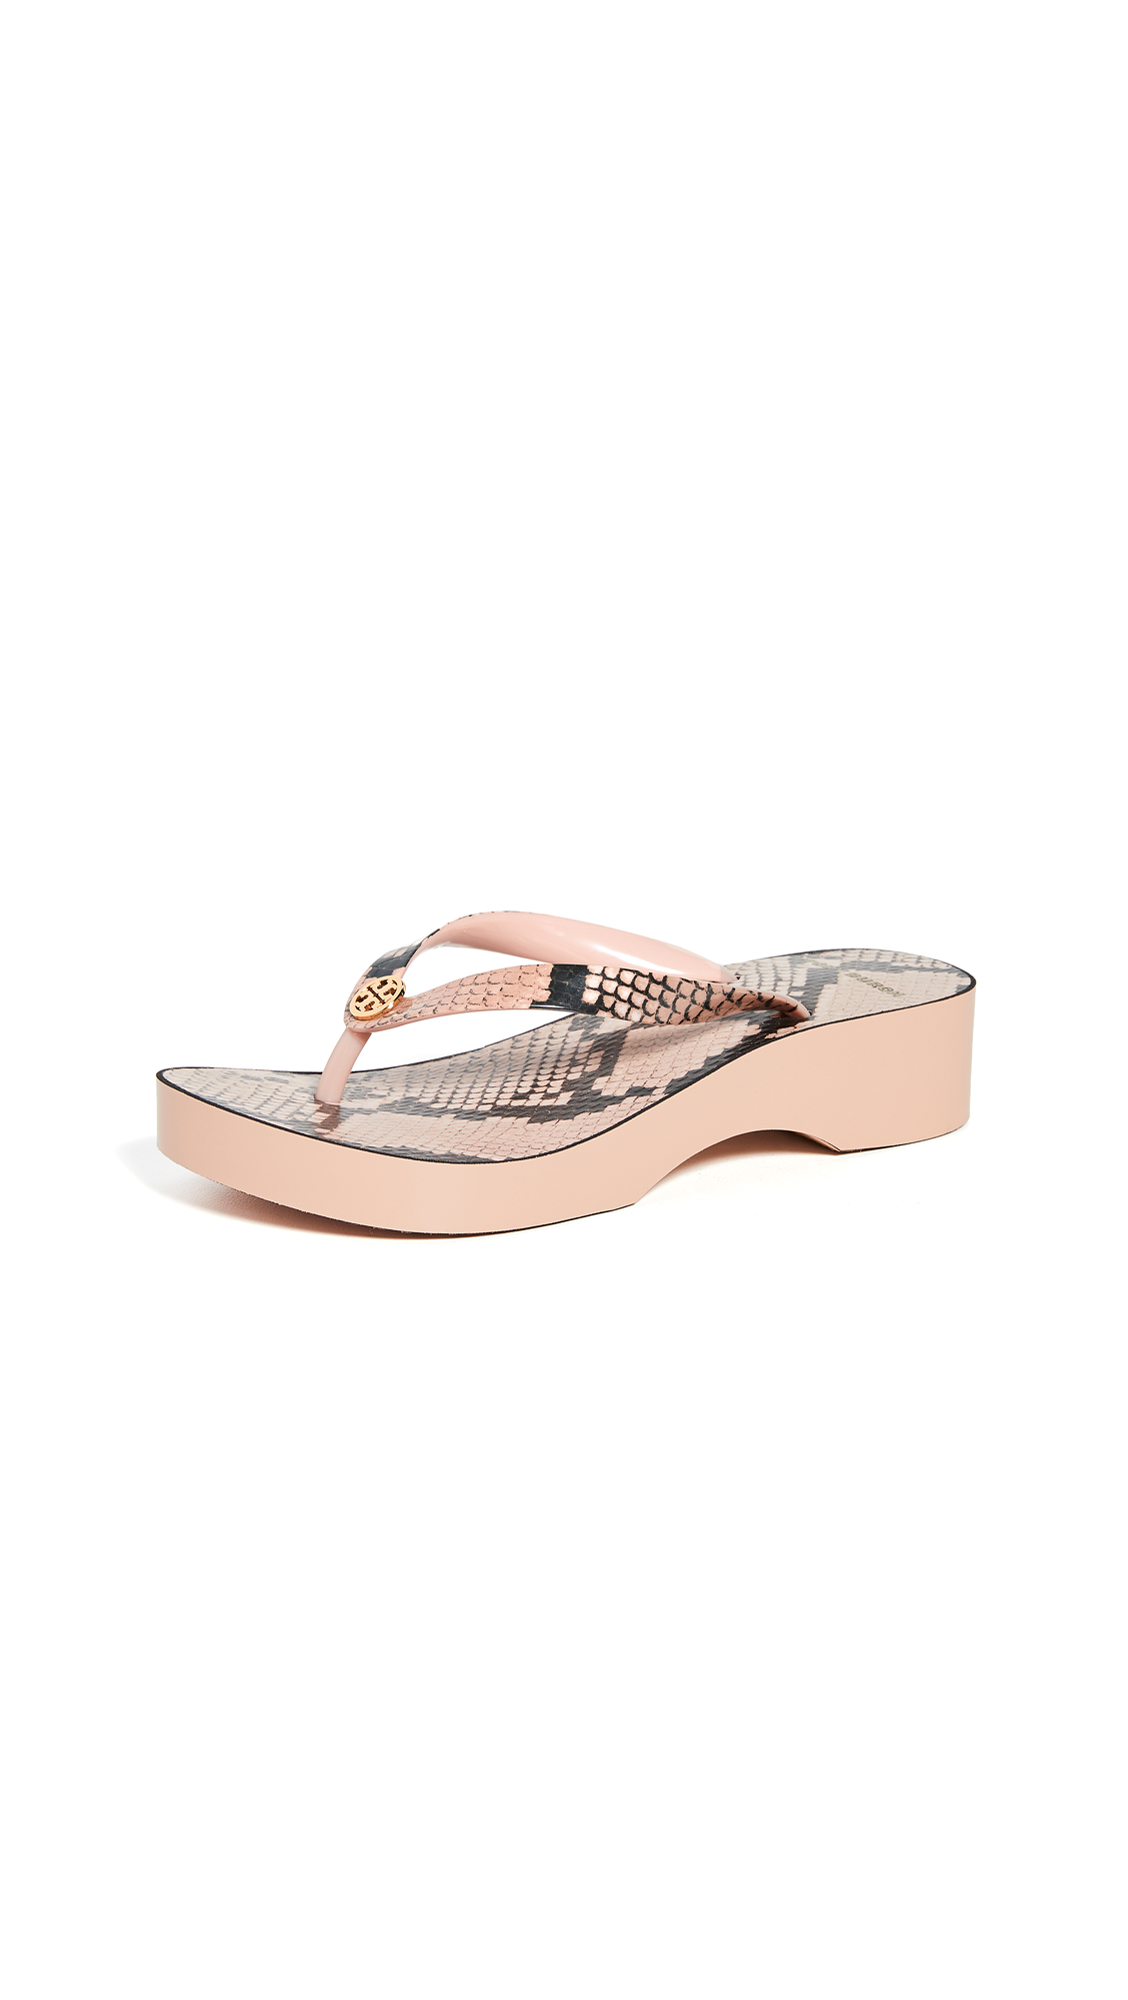 Tory Burch Printed Cutout Wedge Flip Flop In Blush Roccia  Modesens-2688